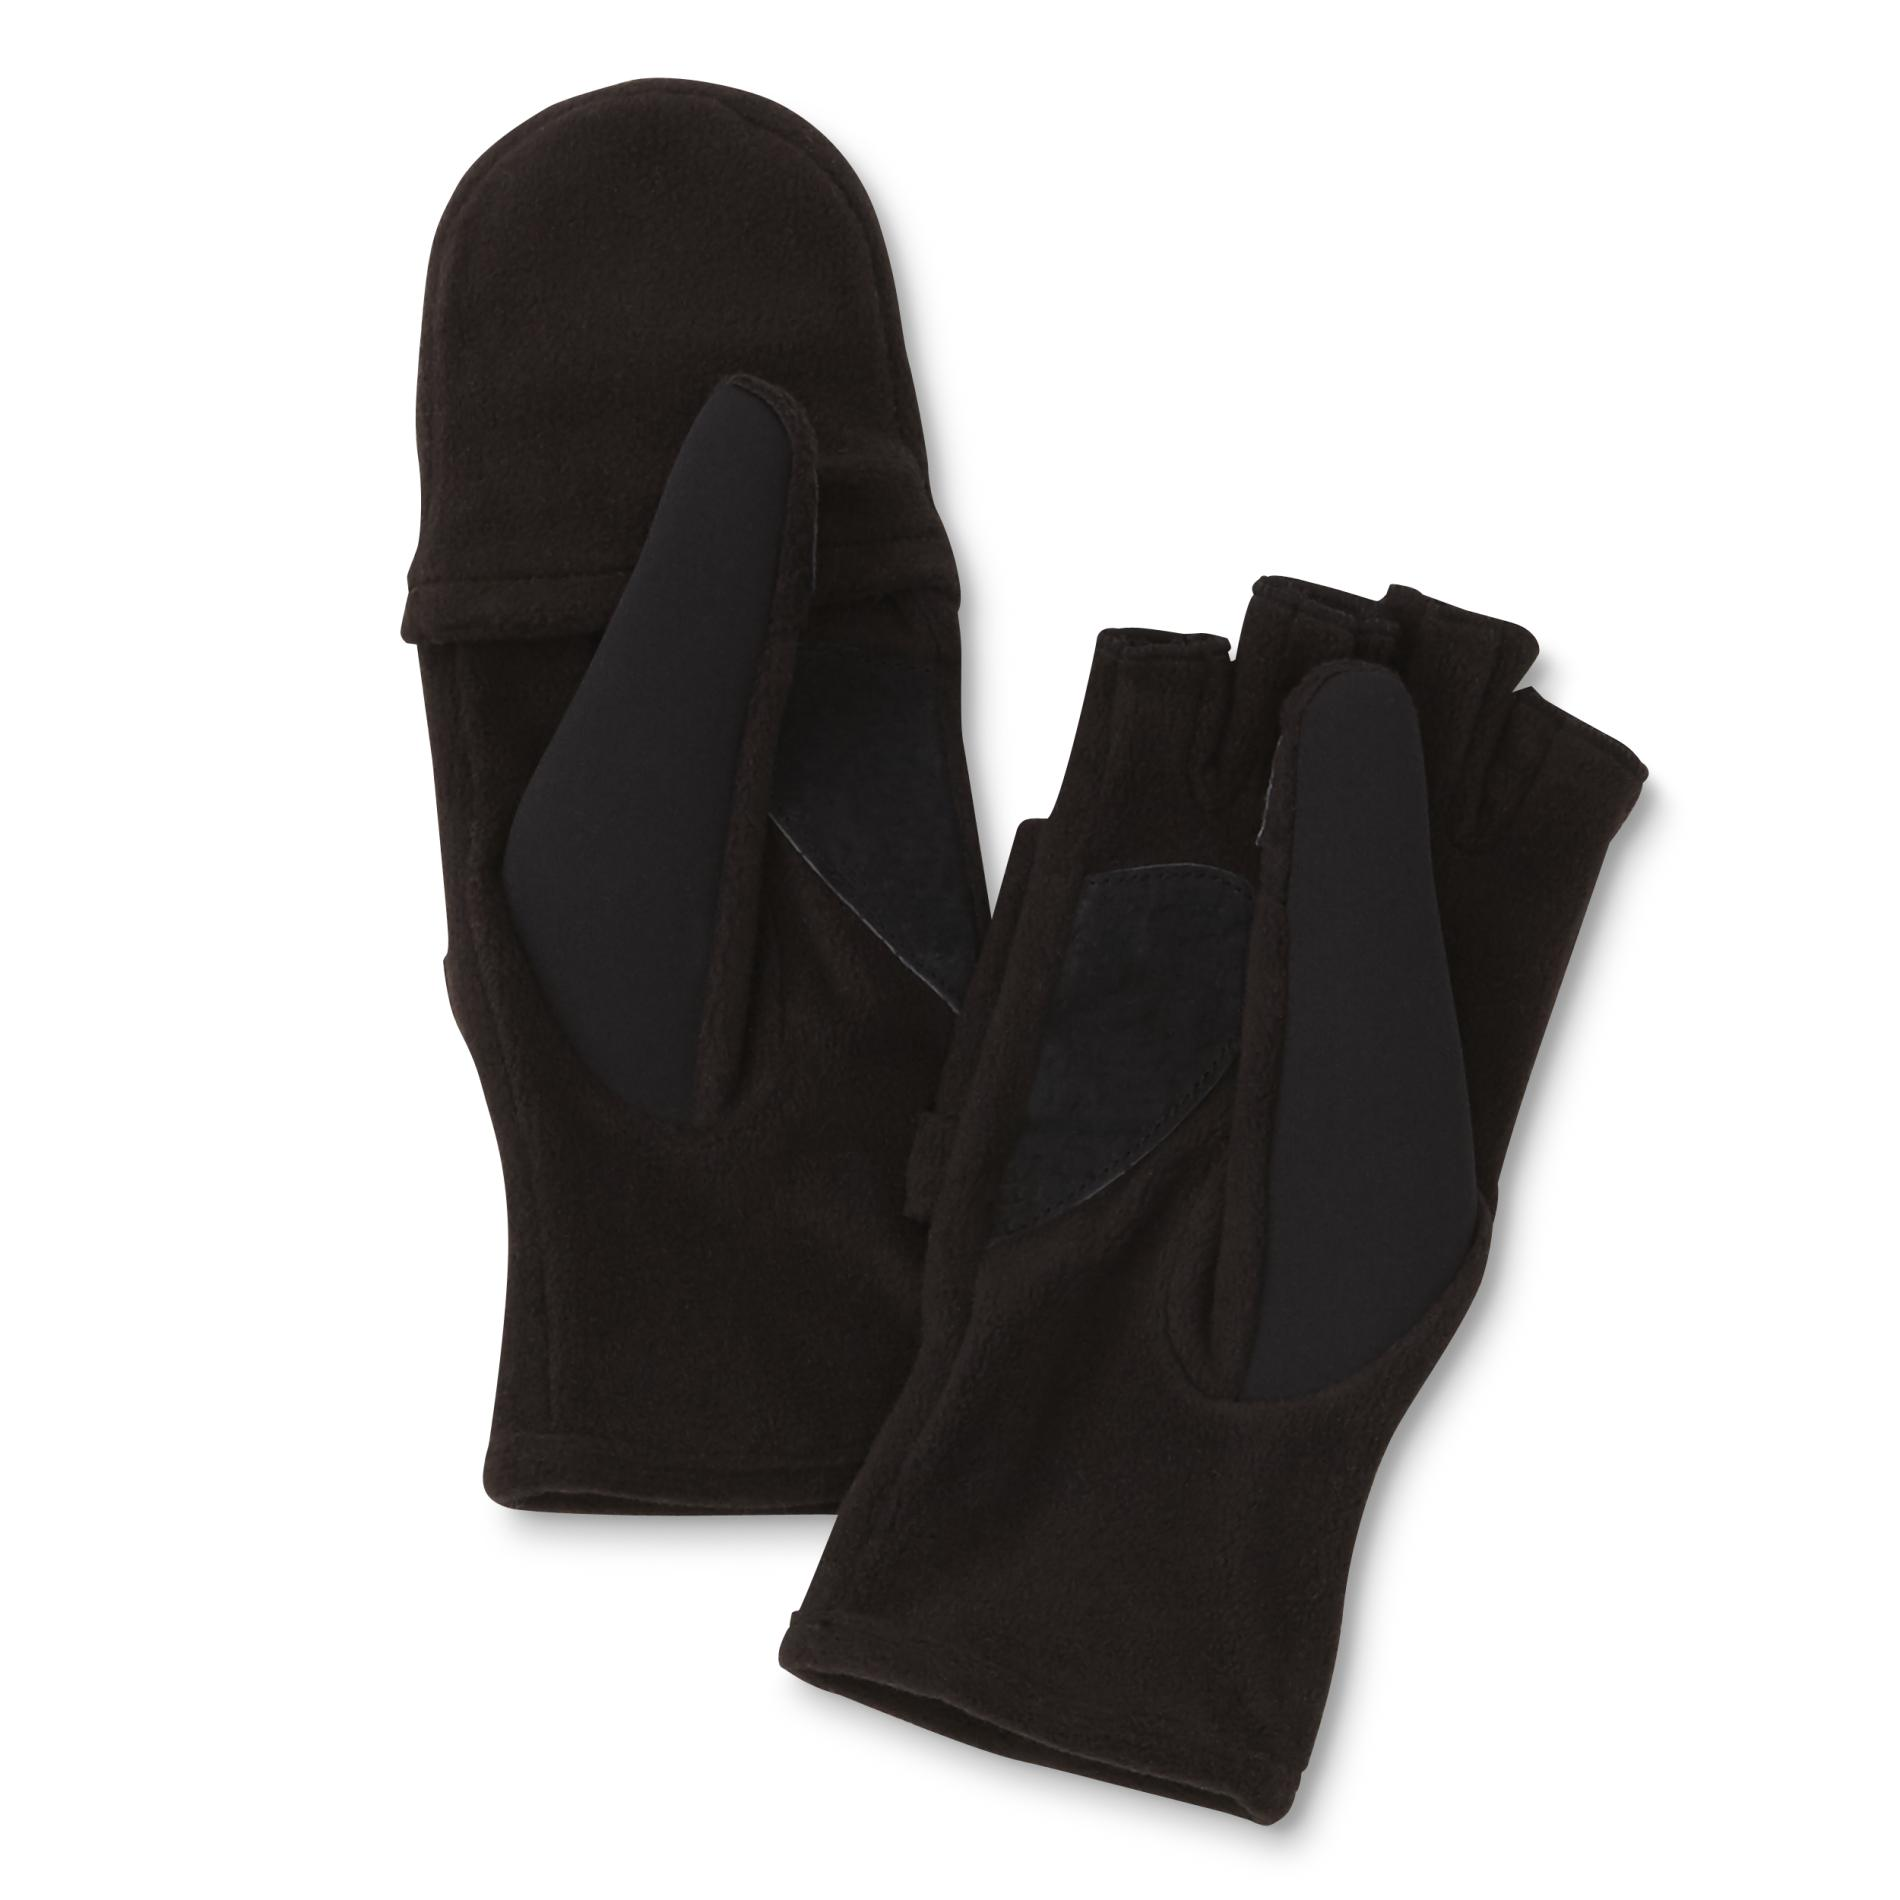 Best prices on Convertible mittens gloves in Women's Gloves & Mittens online. Visit Bizrate to find the best deals on top brands. Read reviews on Clothing & Accessories merchants and buy with confidence.